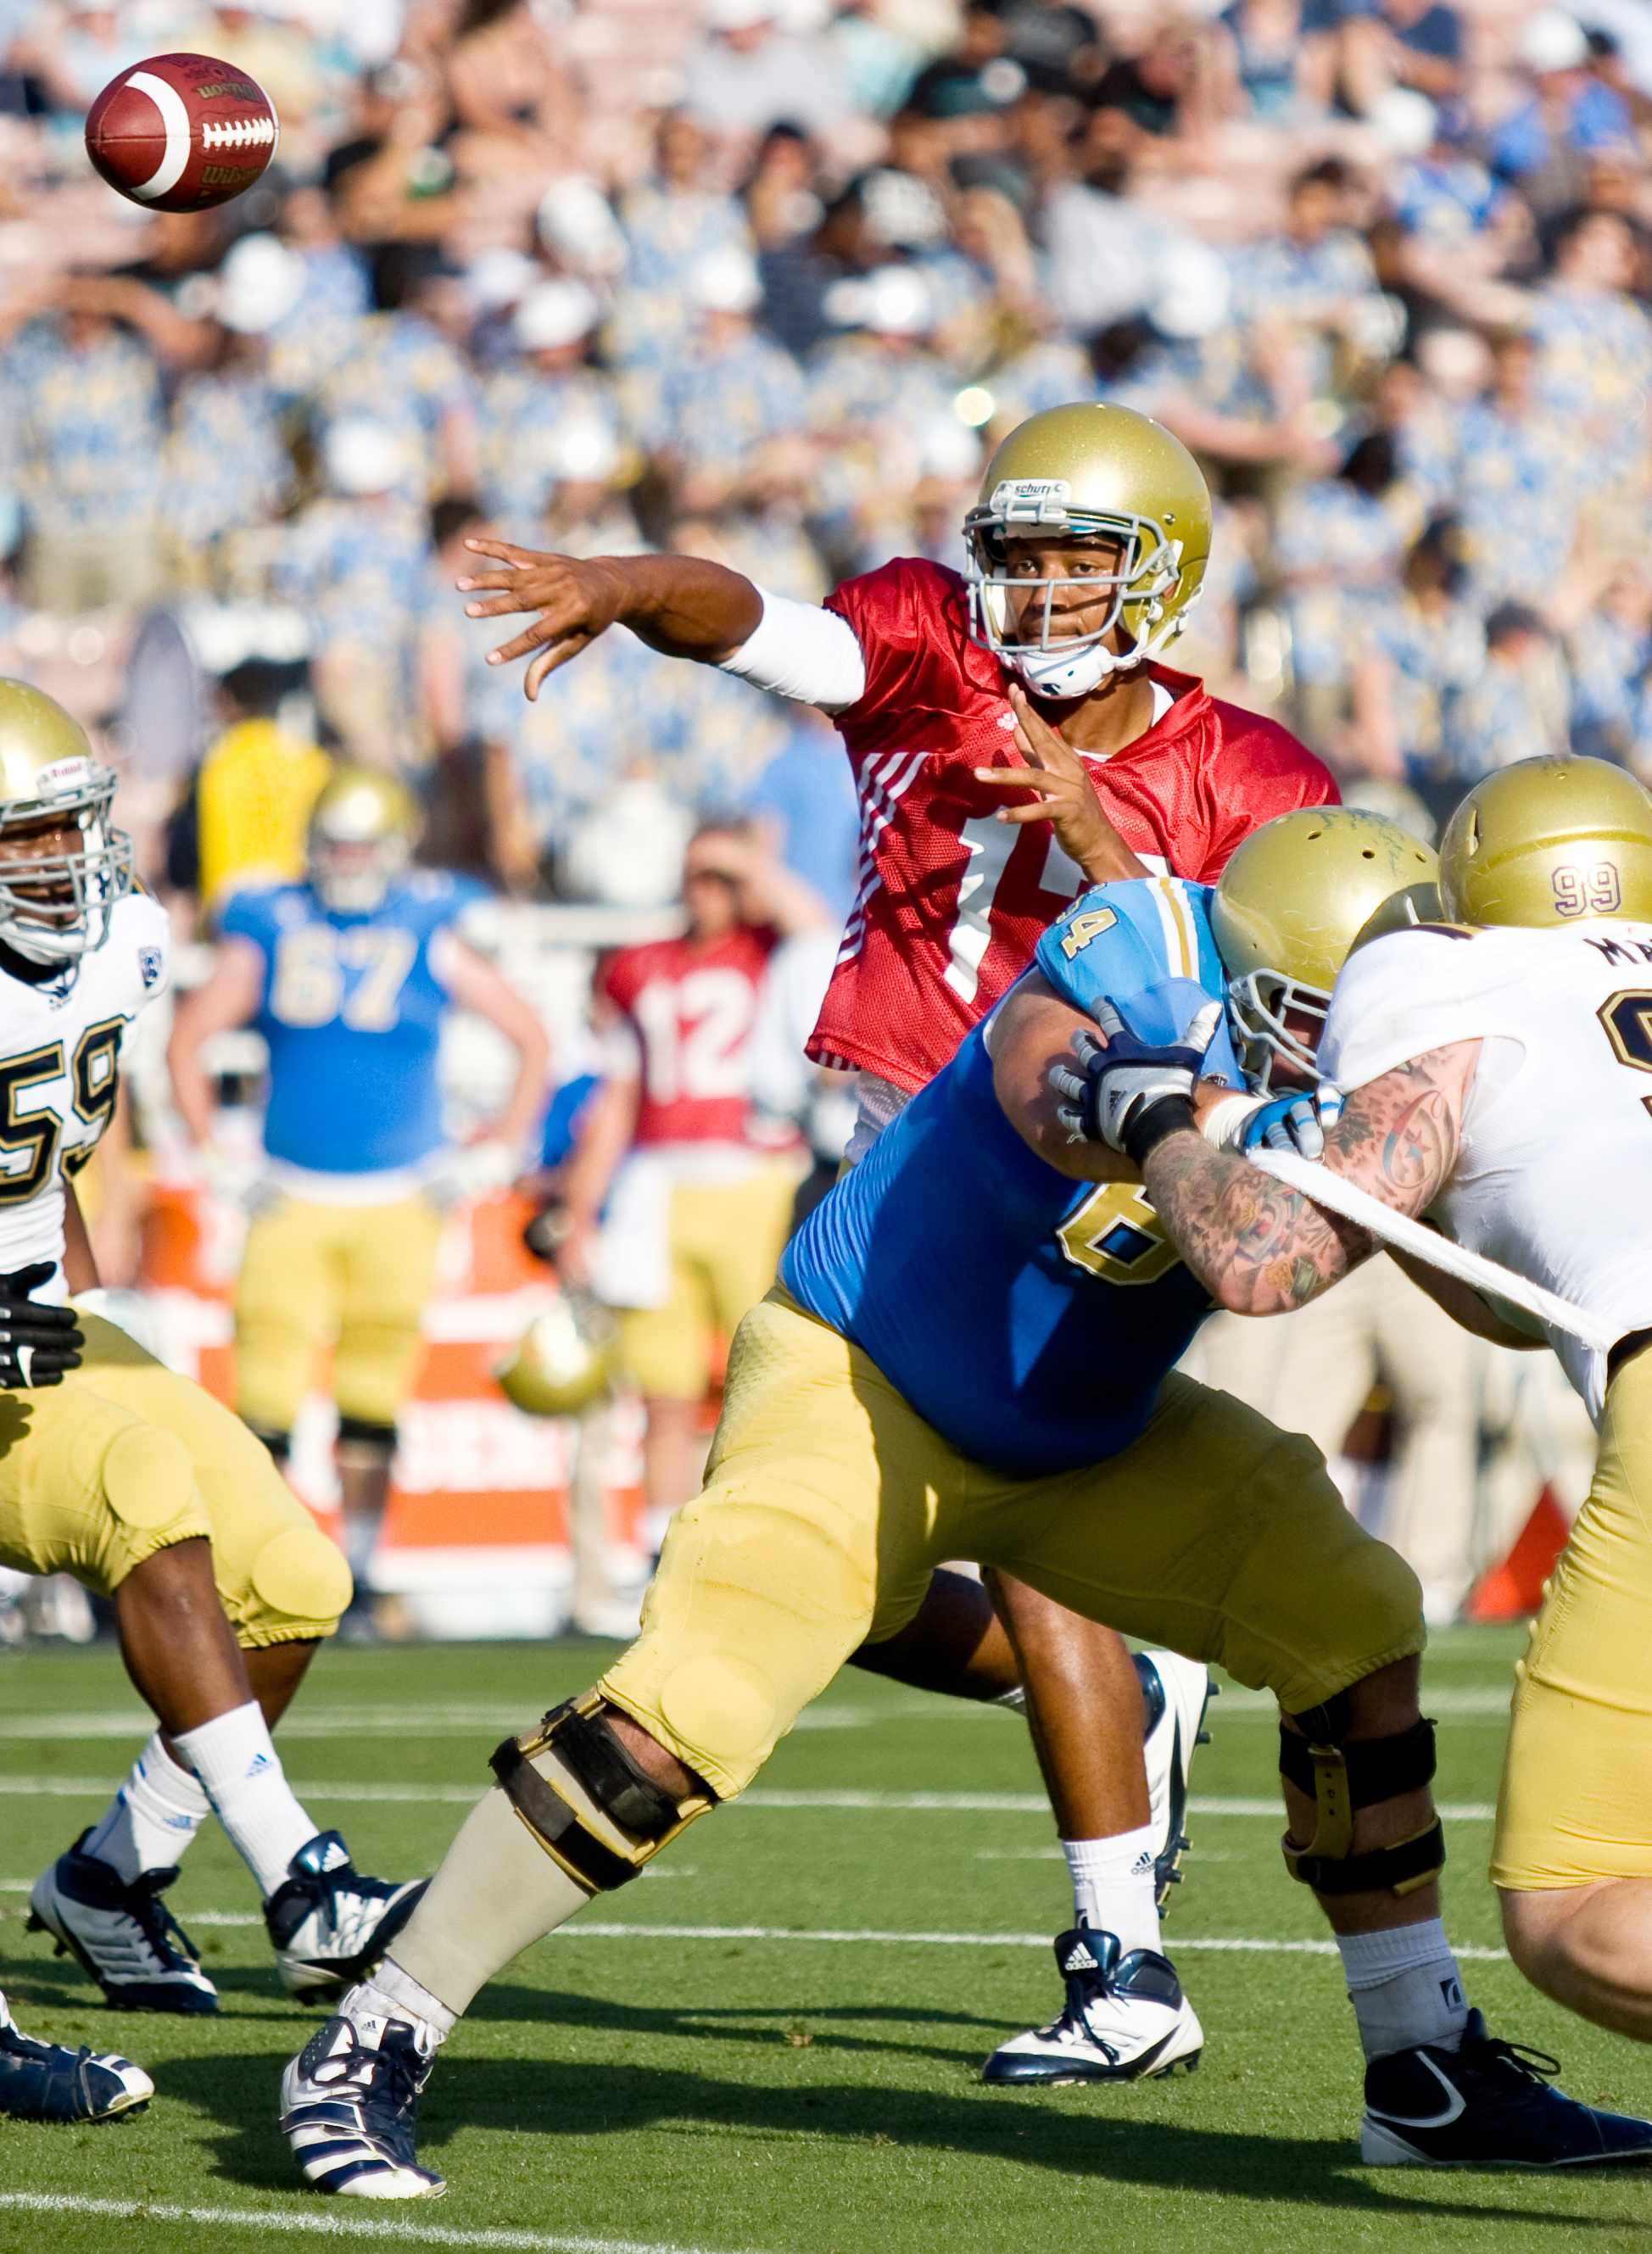 Rising redshirt freshman quarterback Brett Hundley is competing with returners Kevin Prince and Richard Brehaut to be the starting quarterback for the Bruins in the 2012-2013 season.